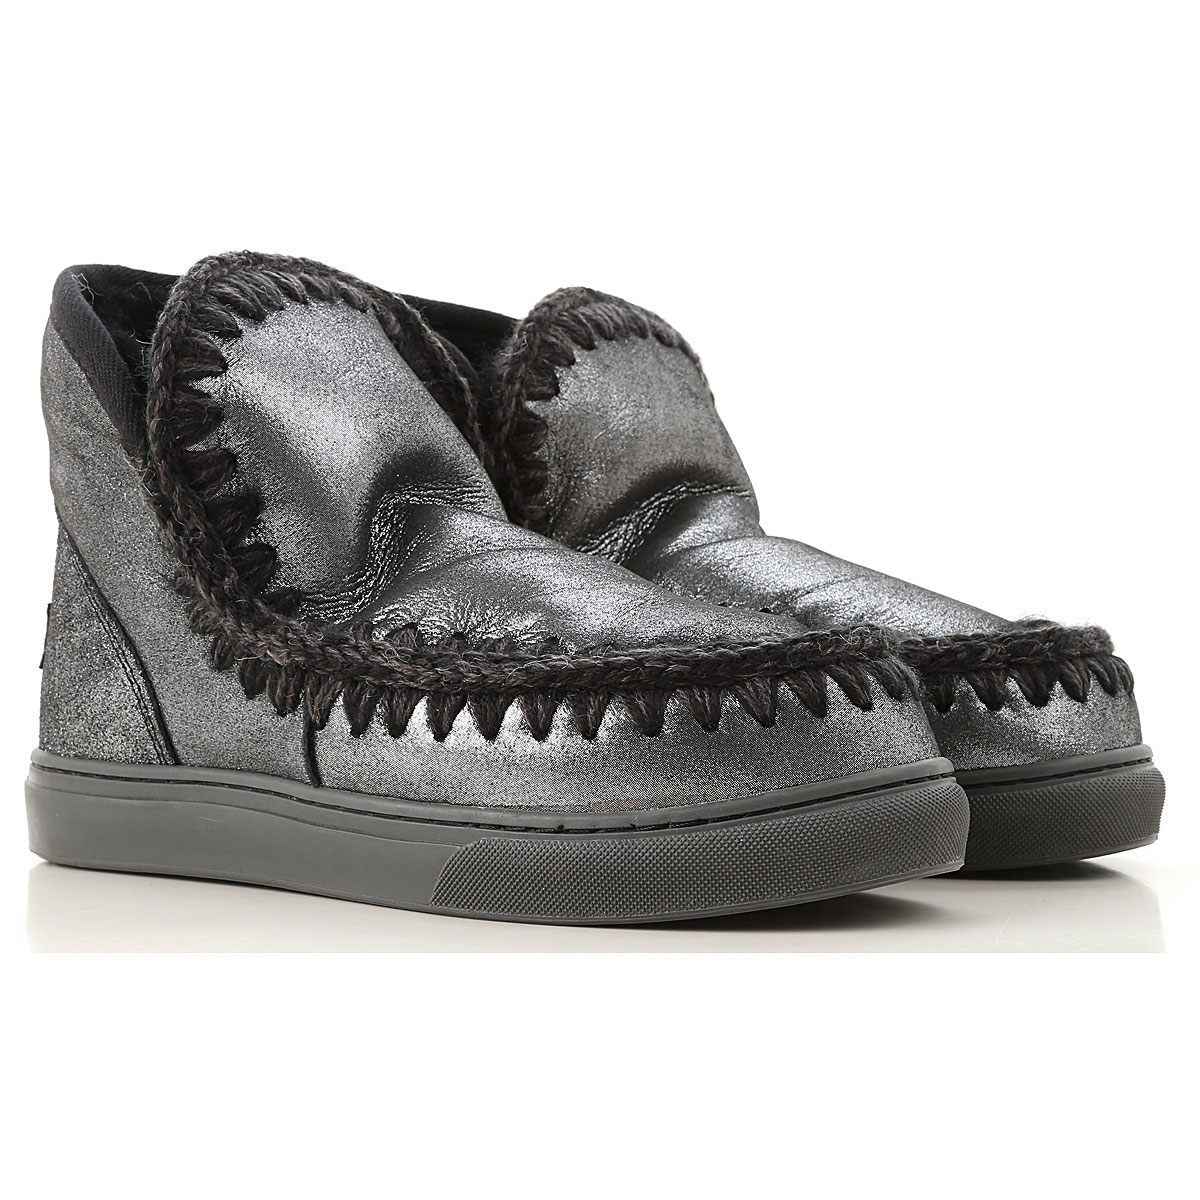 Mou Boots for Women, Booties On Sale, Black, suede, 2019, EUR 36 - UK 3 - USA 5.5 EUR 40 - UK 7 - USA 9.5